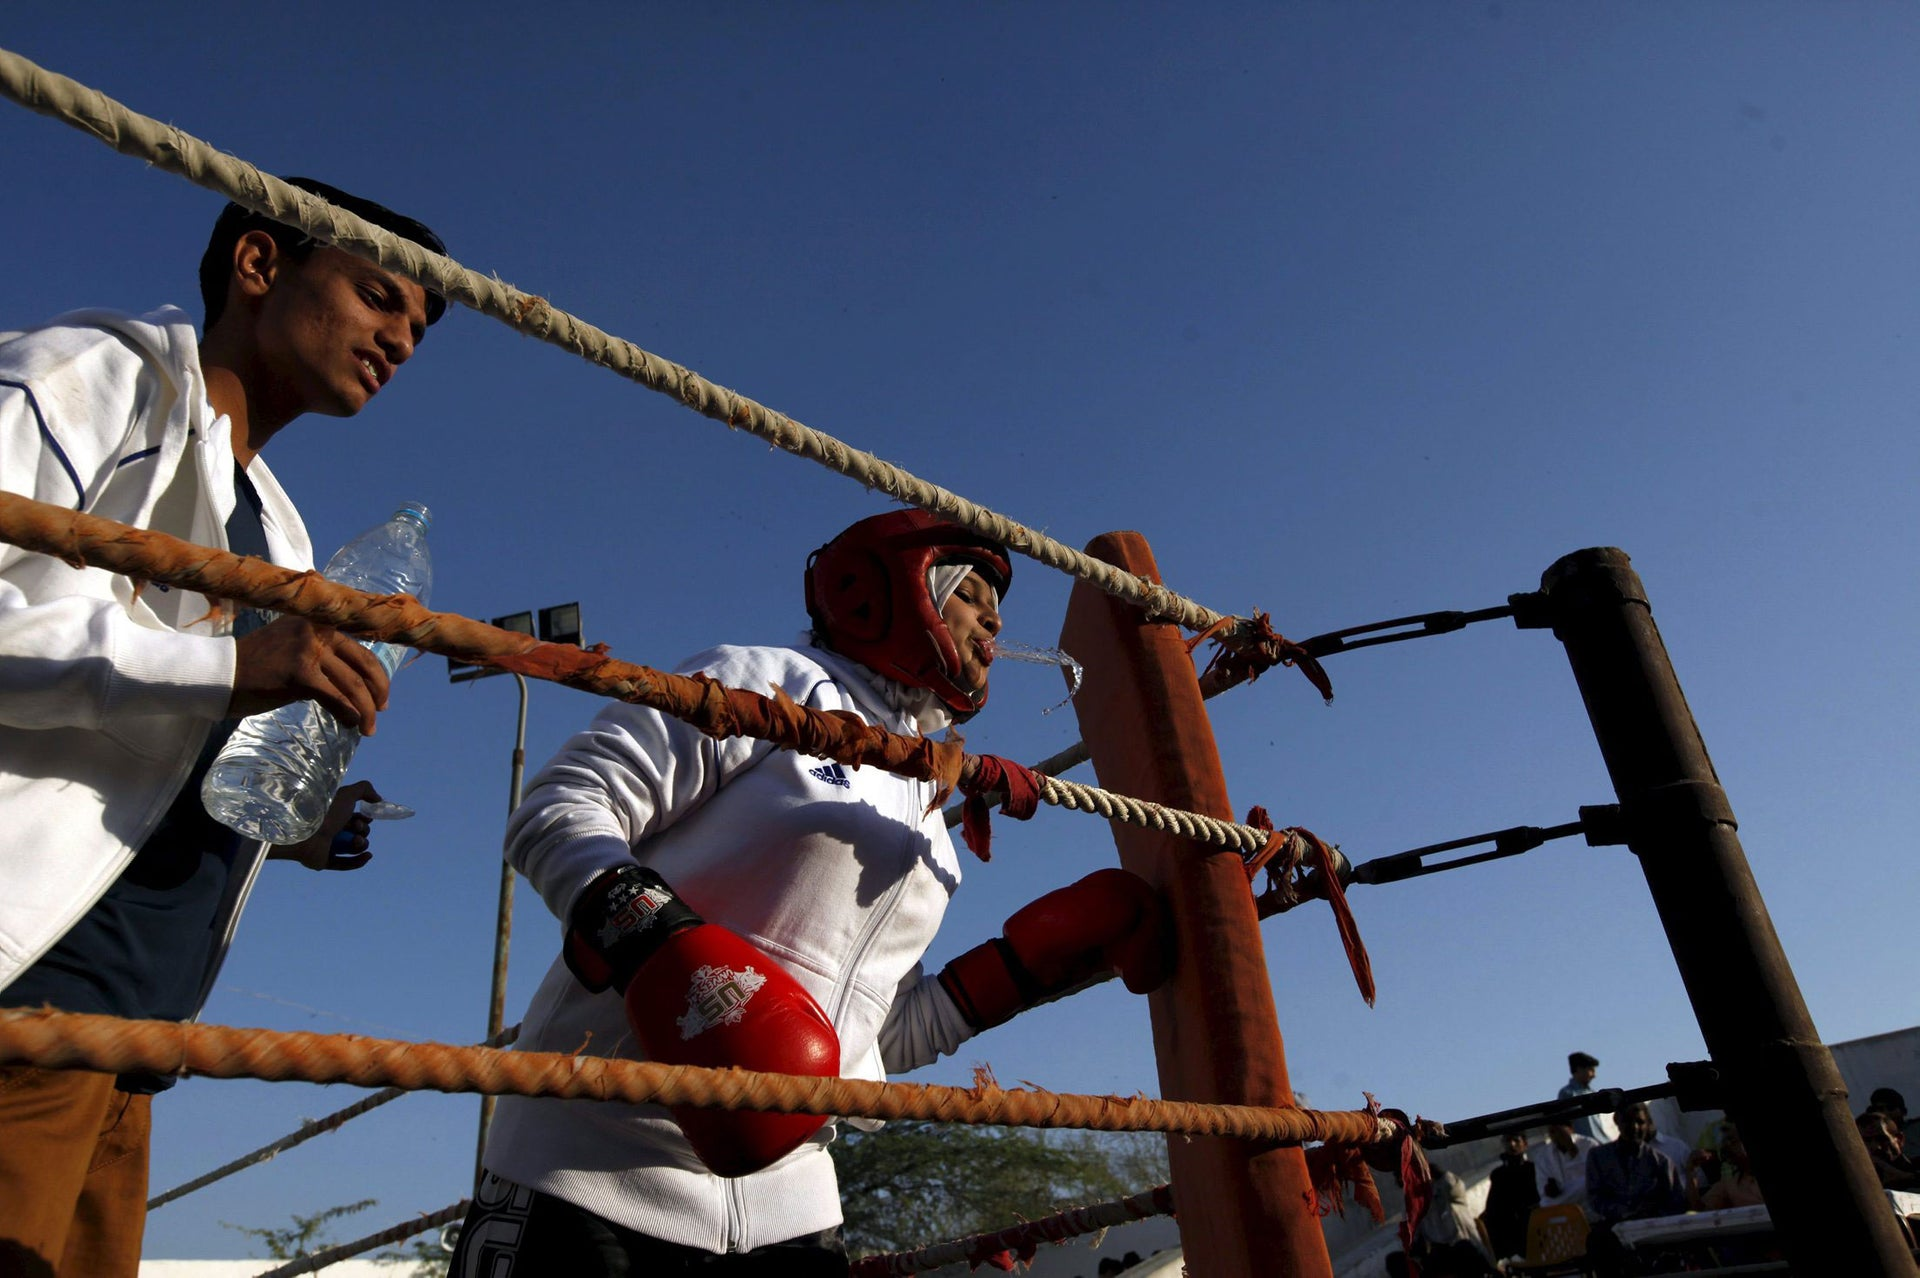 Urooj, 15, spits water between rounds in her bout during the Sindh Junior Sports Association Boxing Tournament in Karachi, Pakistan February 21, 2016.